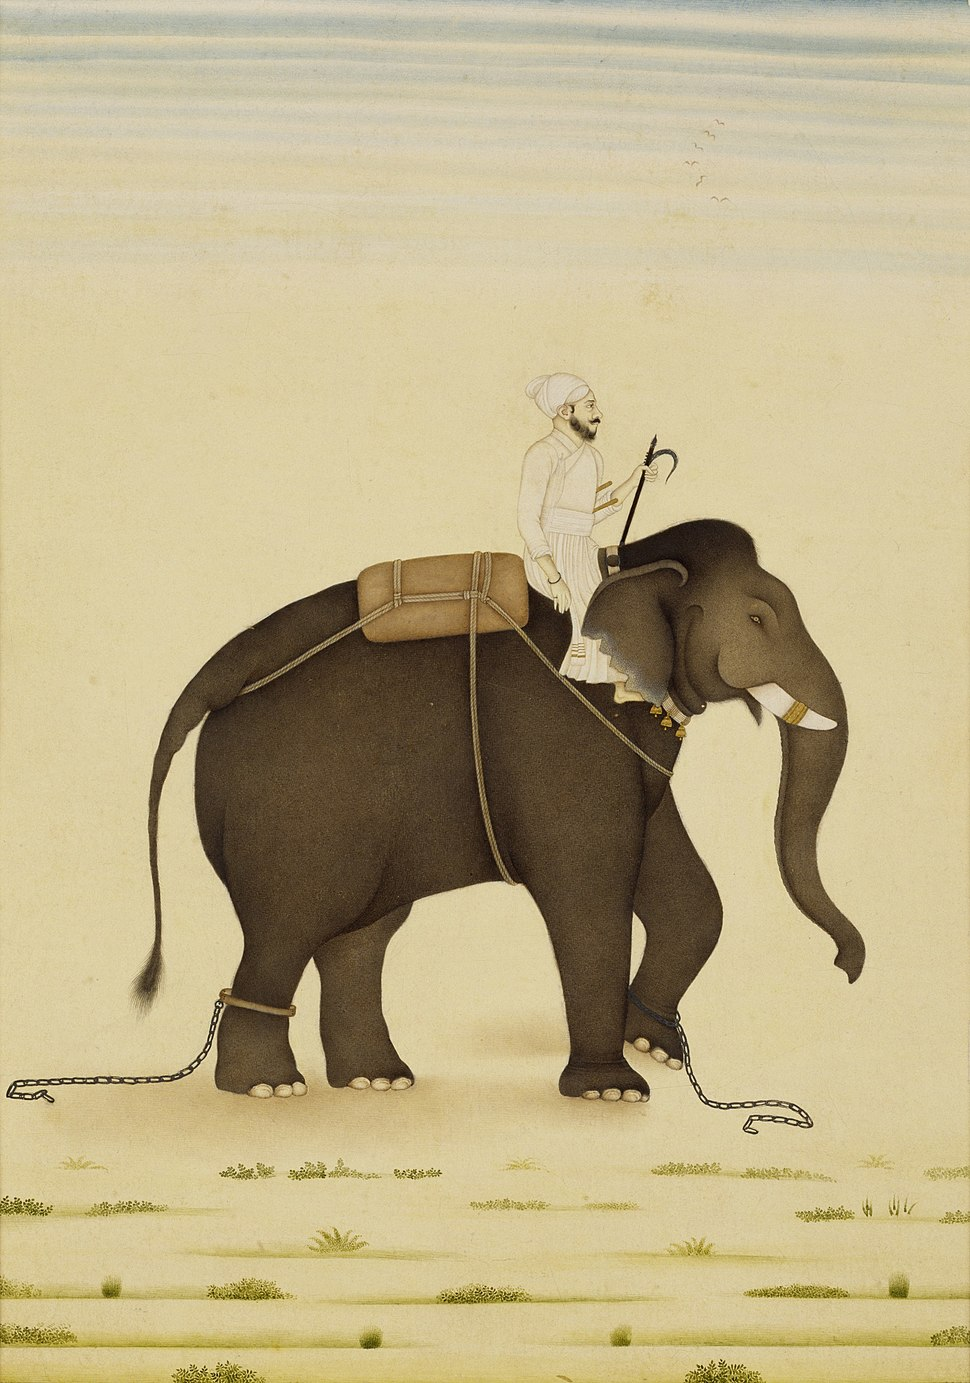 Mahout on an elephant; gouache on paper